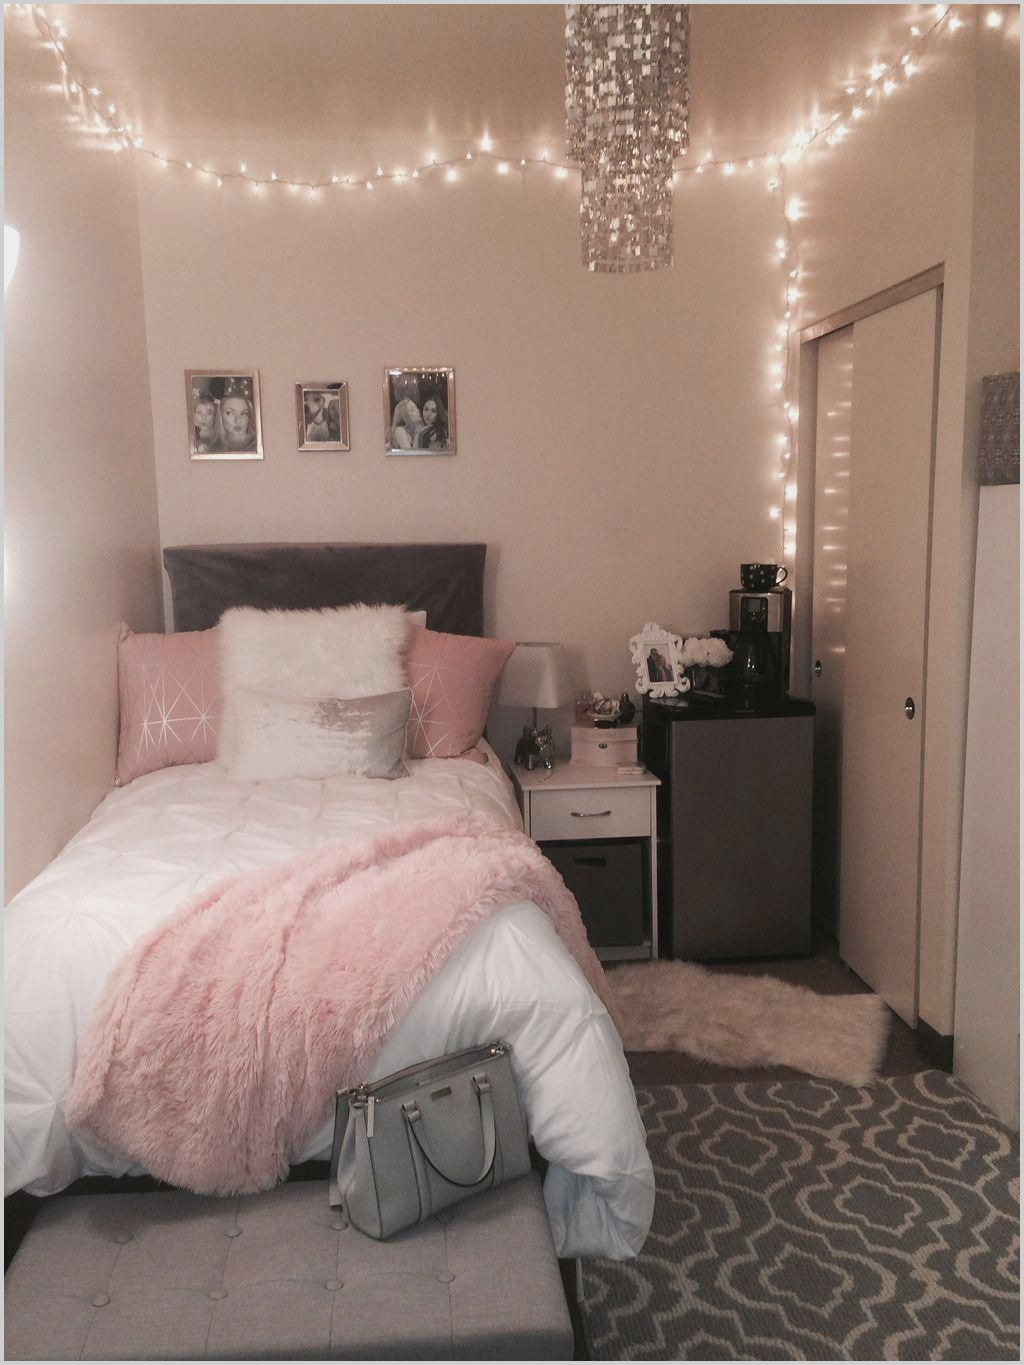 Stylish Bedrooms Decoration For Young Woman In 2020 Dorm Room